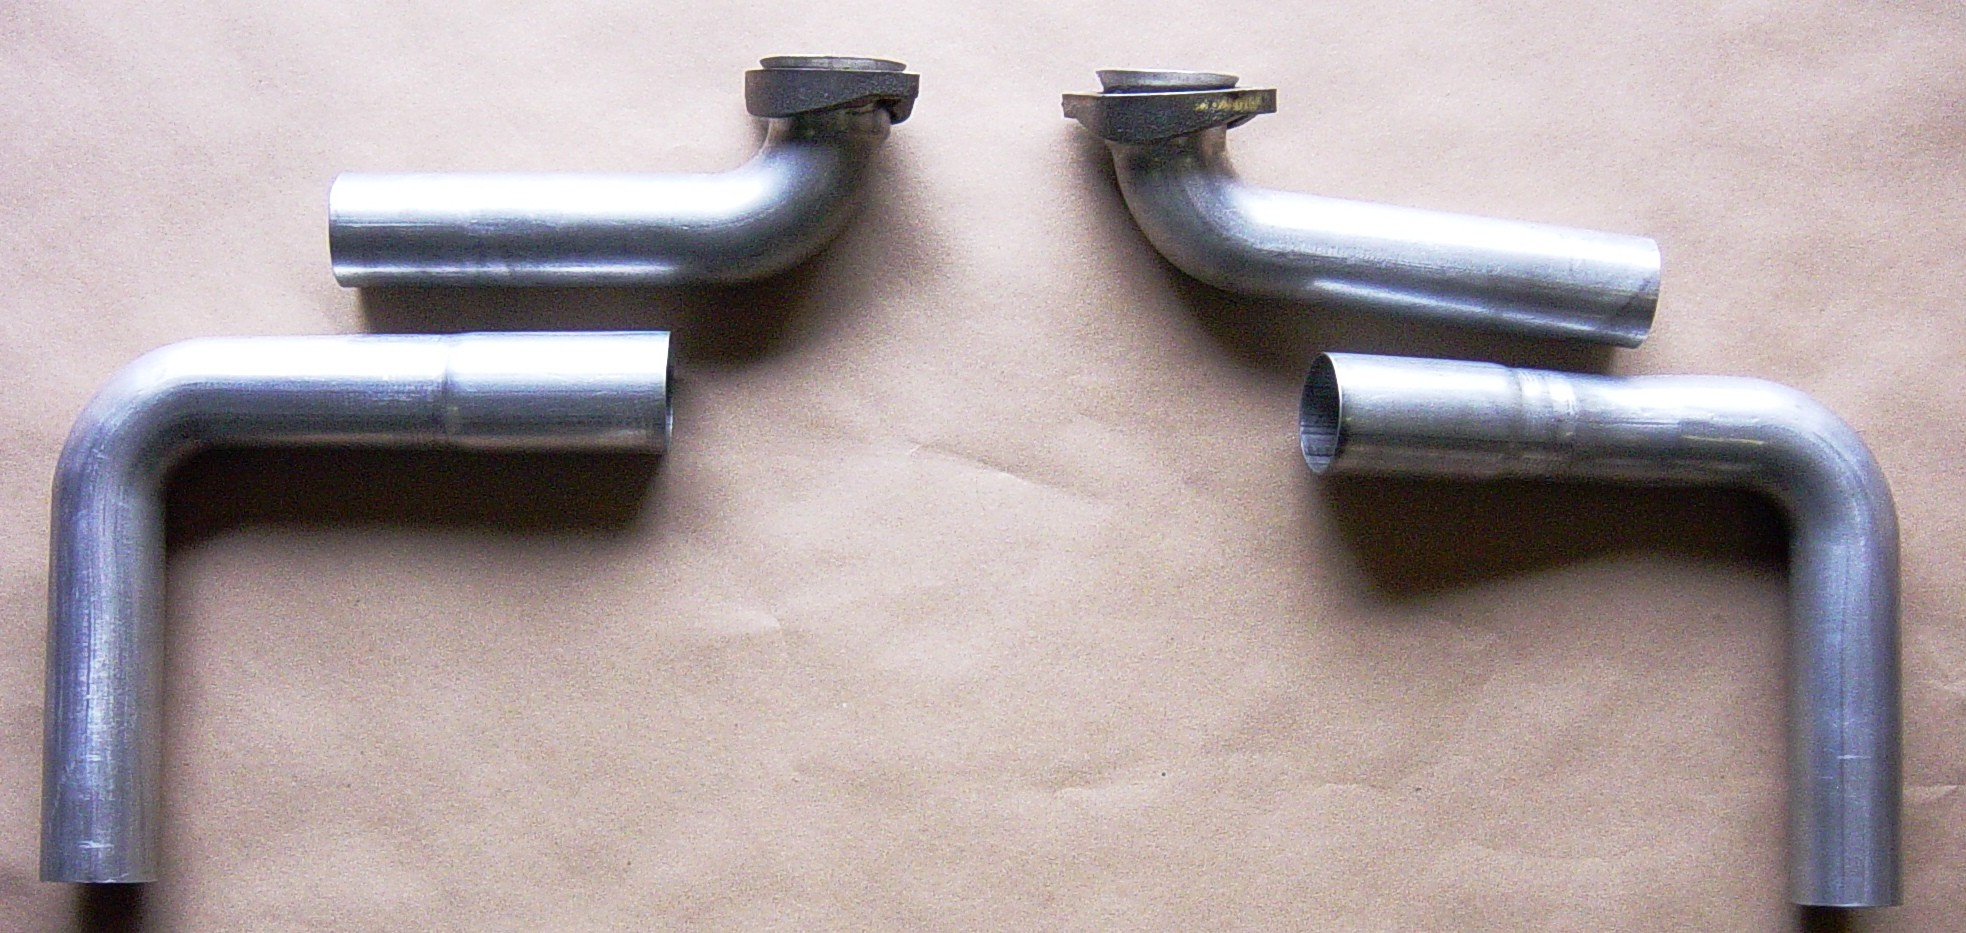 NEW ITEM!!!   SHP-59/60 DOWNPIPE KIT FOR 1959 & 1960 PONTIACs